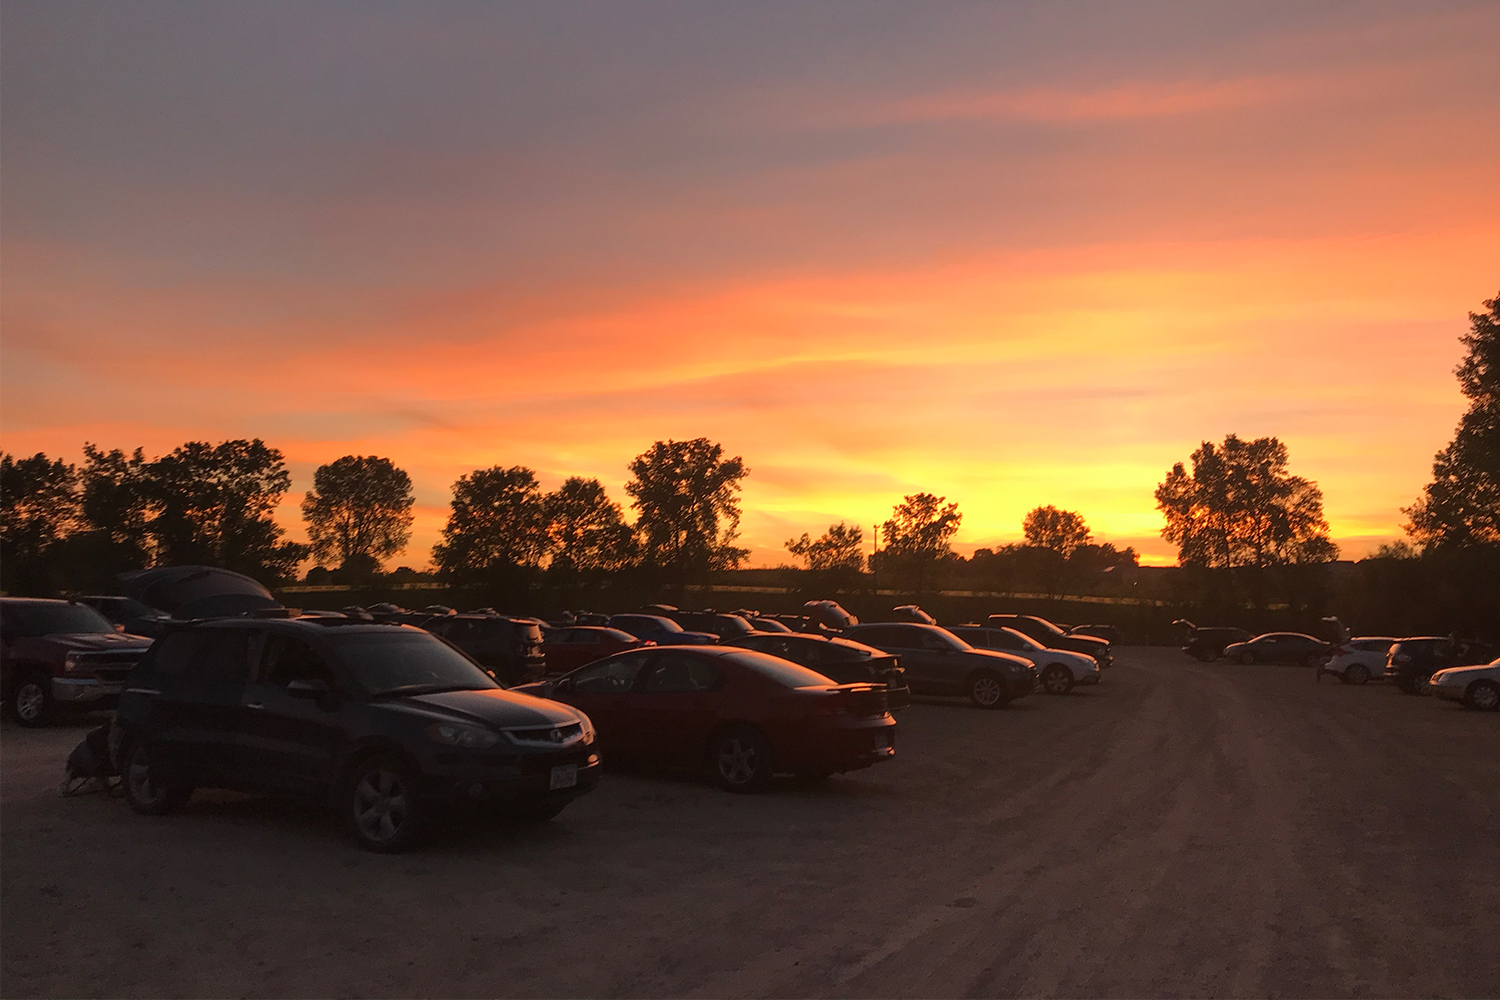 Sunset at the Vali-Hi Drive-In movie theater near Minneapolis, MN